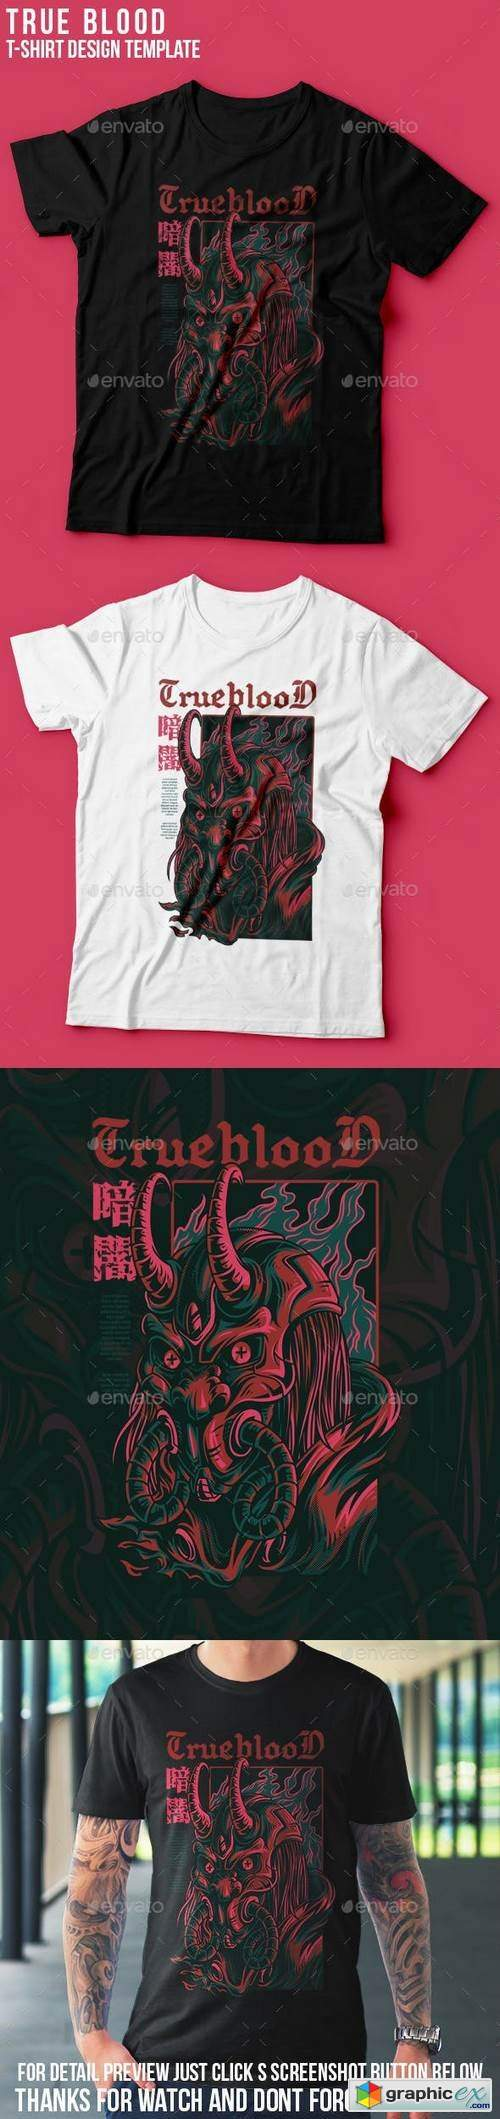 True Blood T-Shirt Design